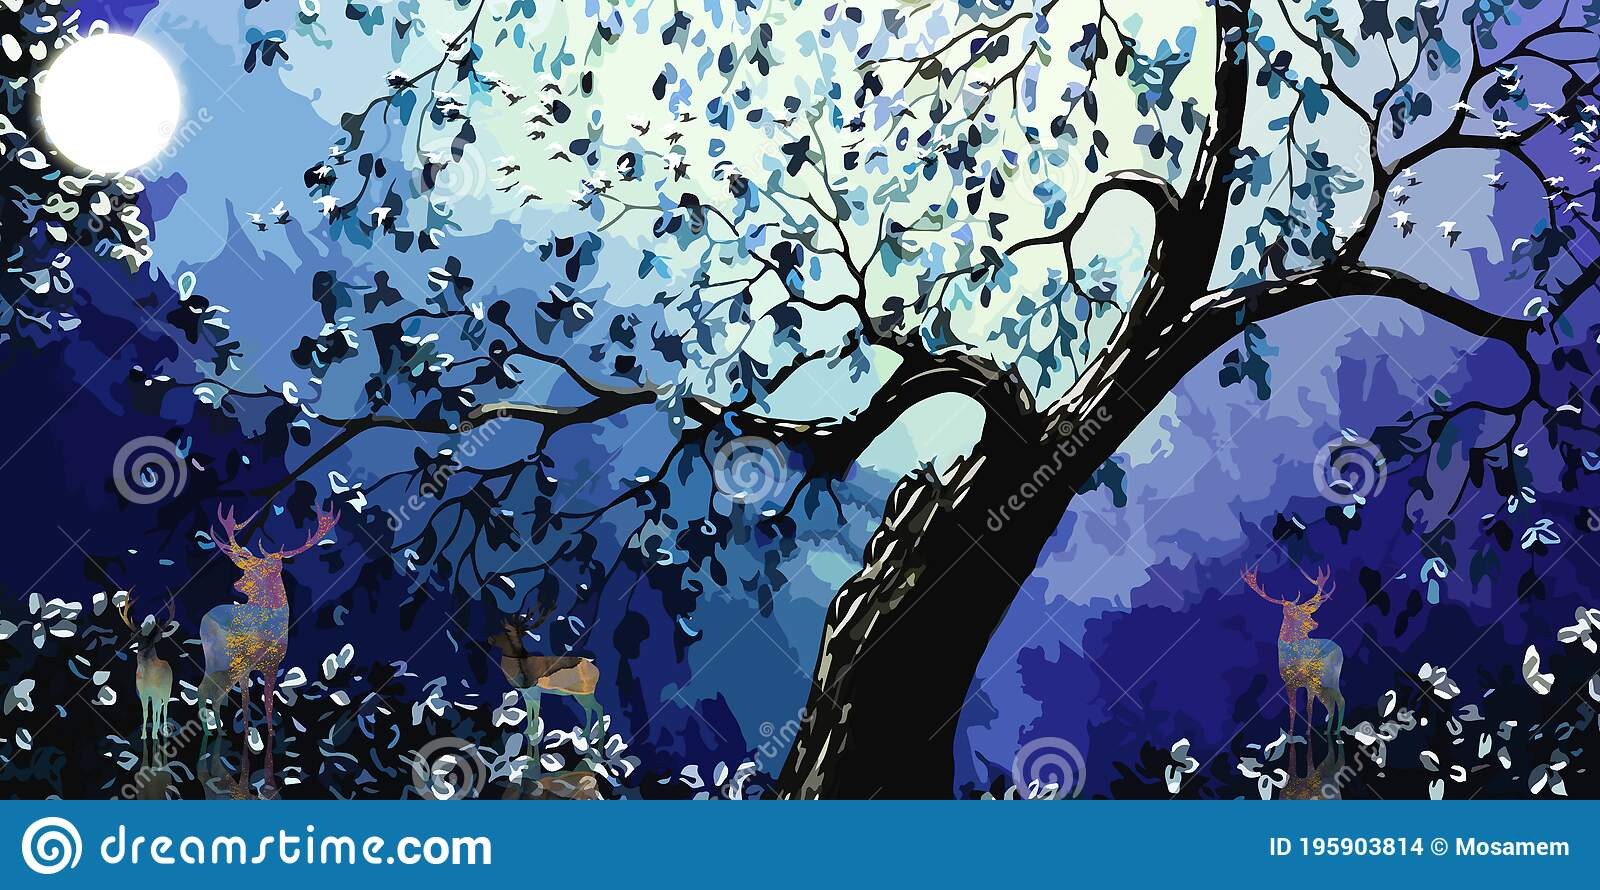 3d Modern Art Mural Wallpaper With Dark Blue Background Deer White Moon And Black Christmas Tree With Birds Stock Illustration Illustration Of Outdoor Background 195903814